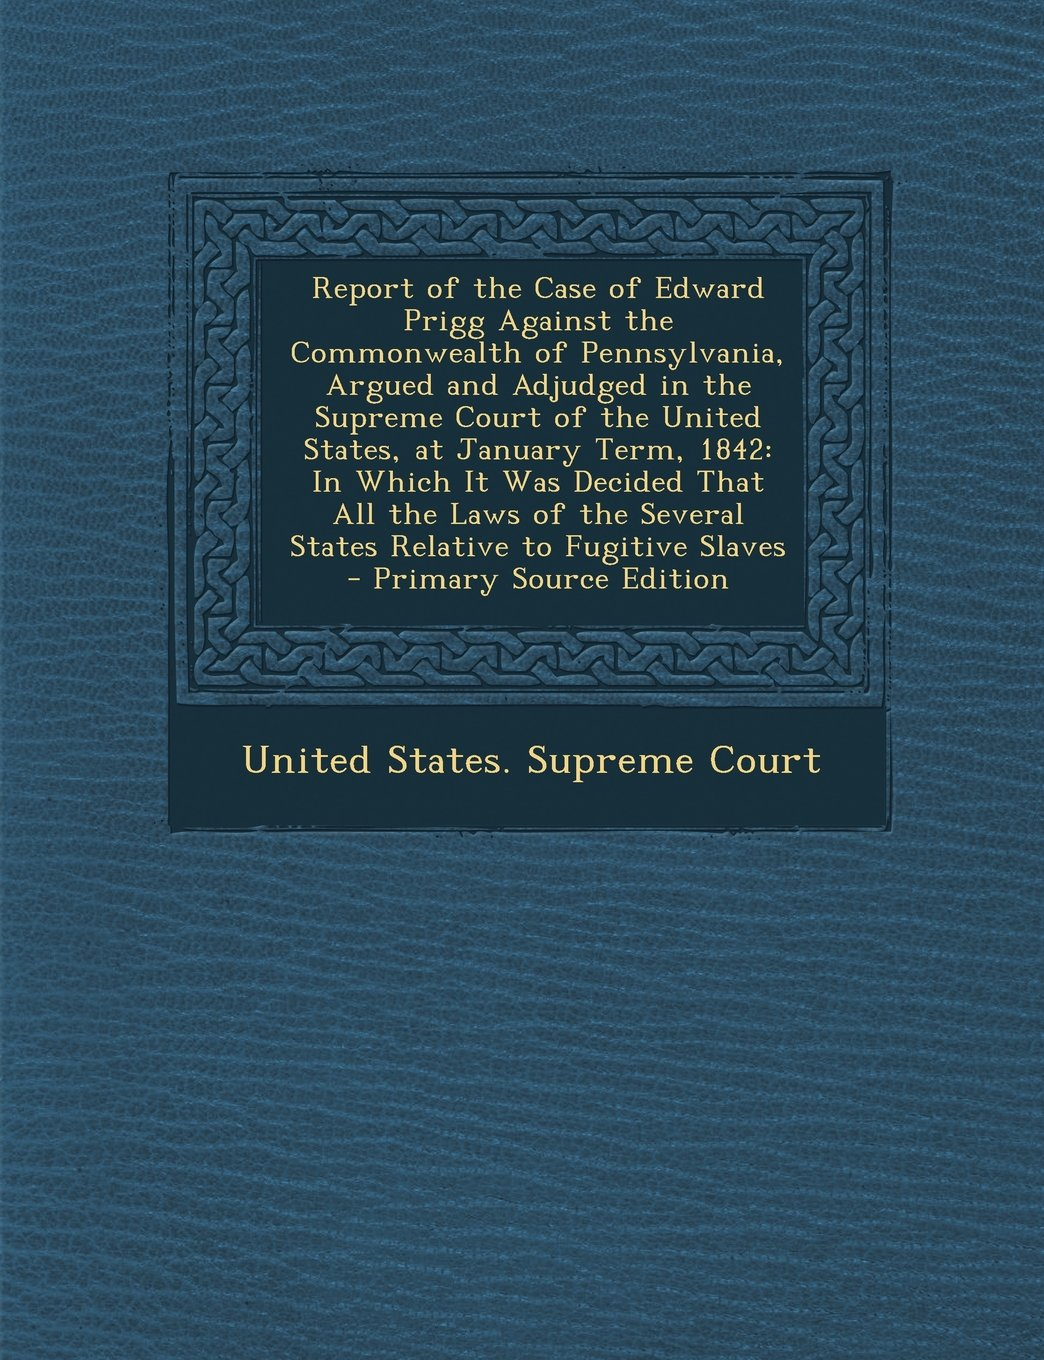 Read Online Report of the Case of Edward Prigg Against the Commonwealth of Pennsylvania, Argued and Adjudged in the Supreme Court of the United States, at January PDF